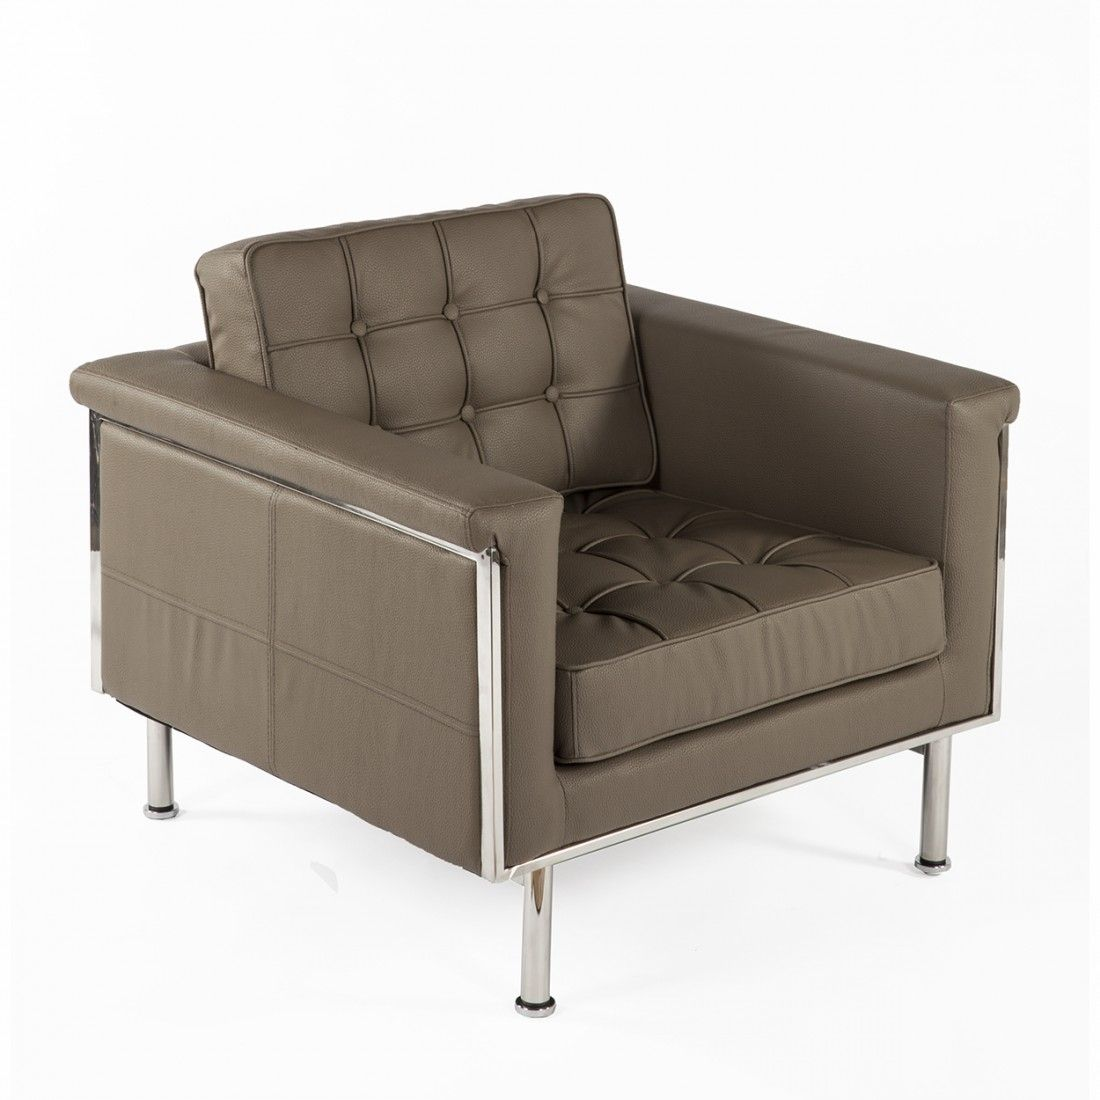 Urne Contemporary Modern Lounge Chair - Taupe France and Son Mid-Century Modern